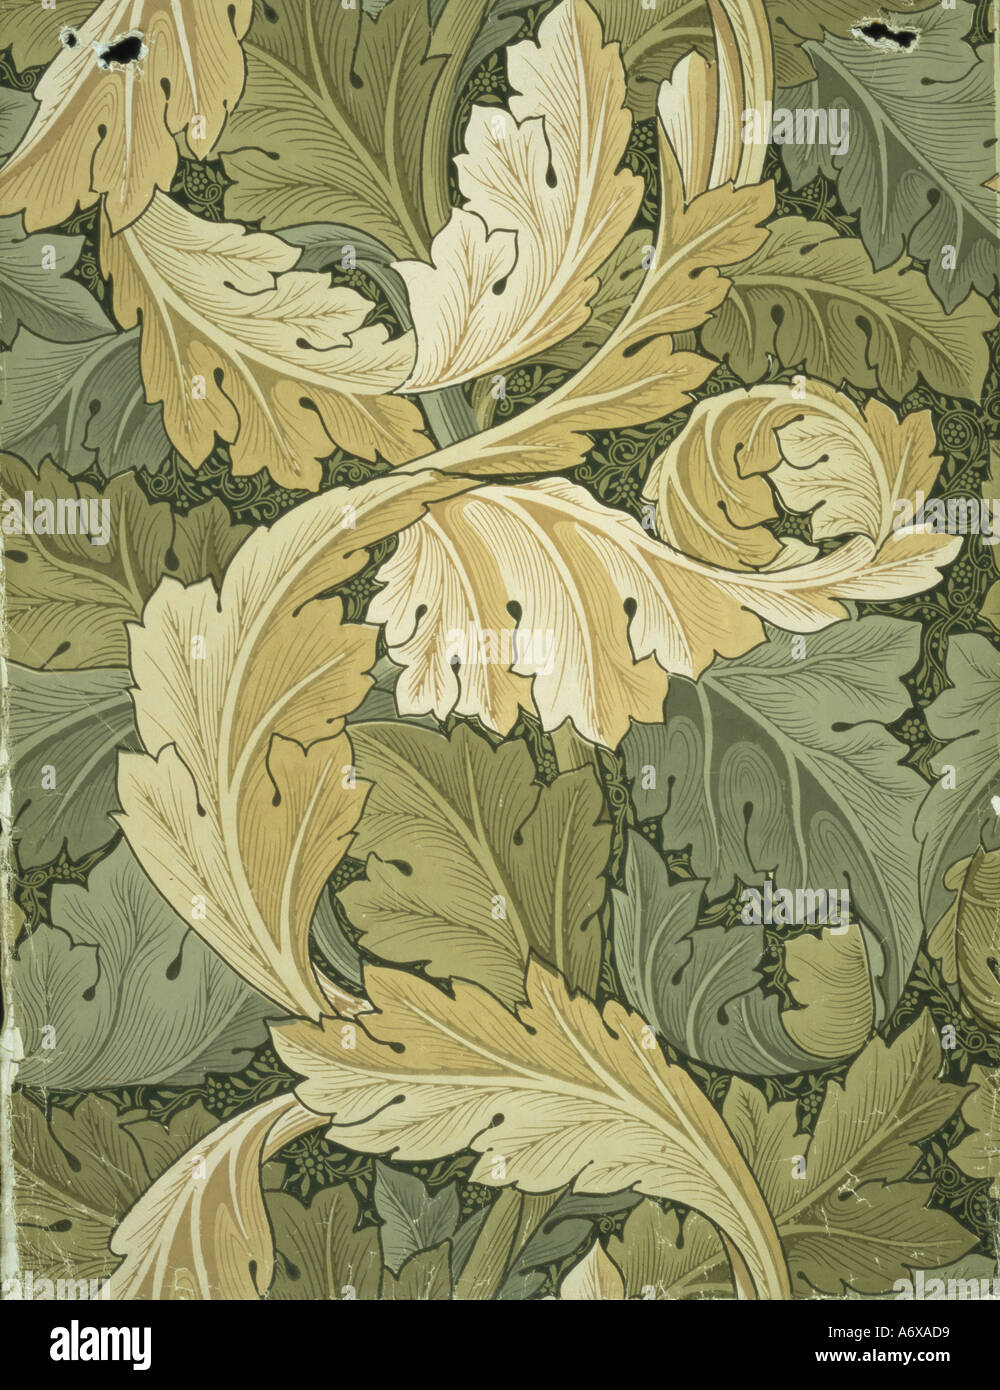 Acanthus wallpaper by William Morris. England, 19th century. - Stock Image